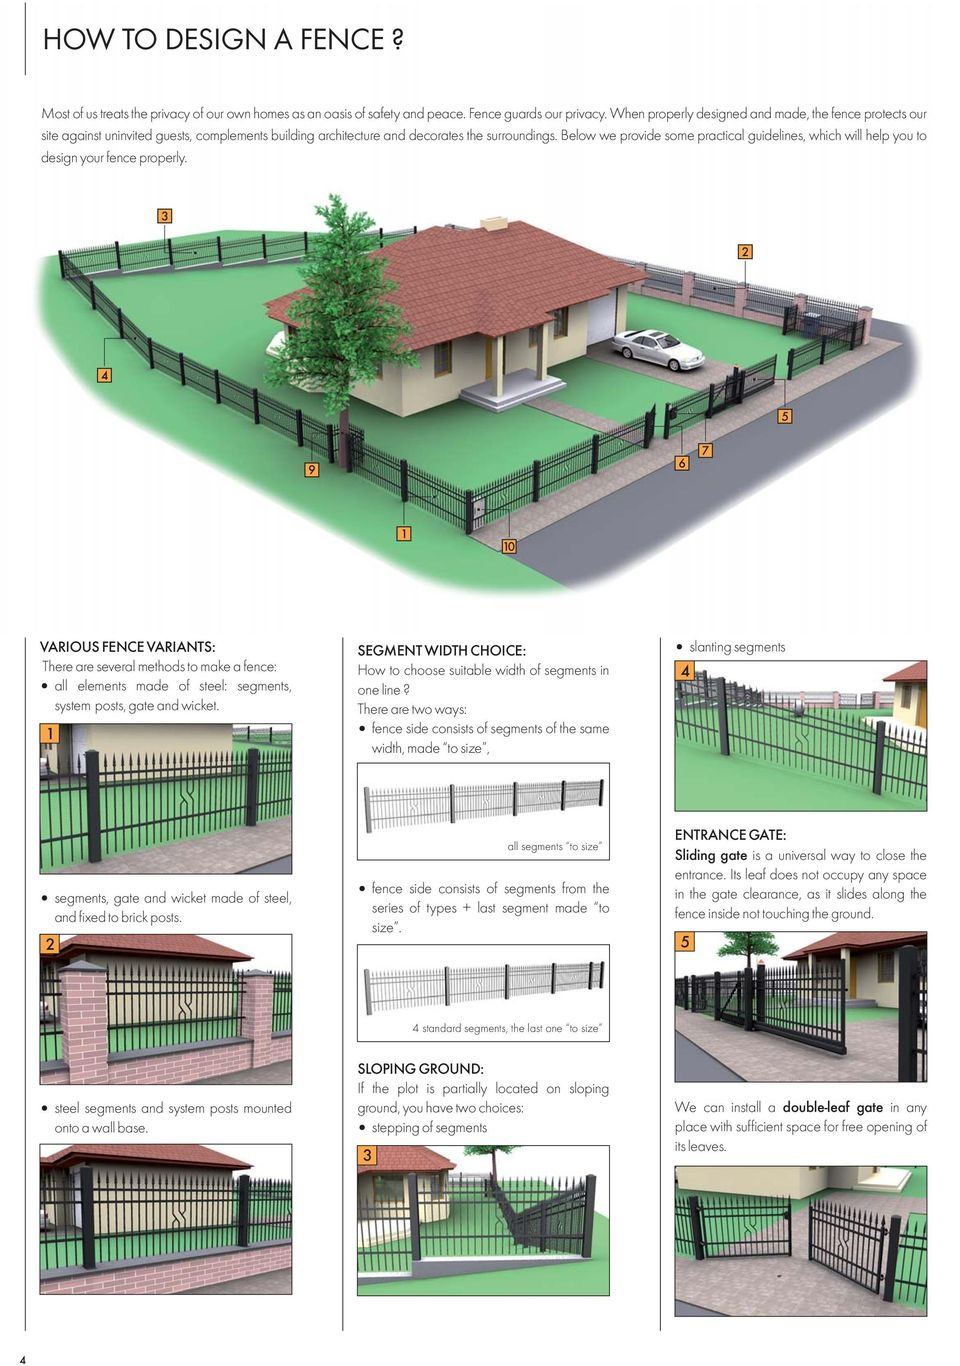 Below we provide some practical guidelines, which will help you to your fence properly.